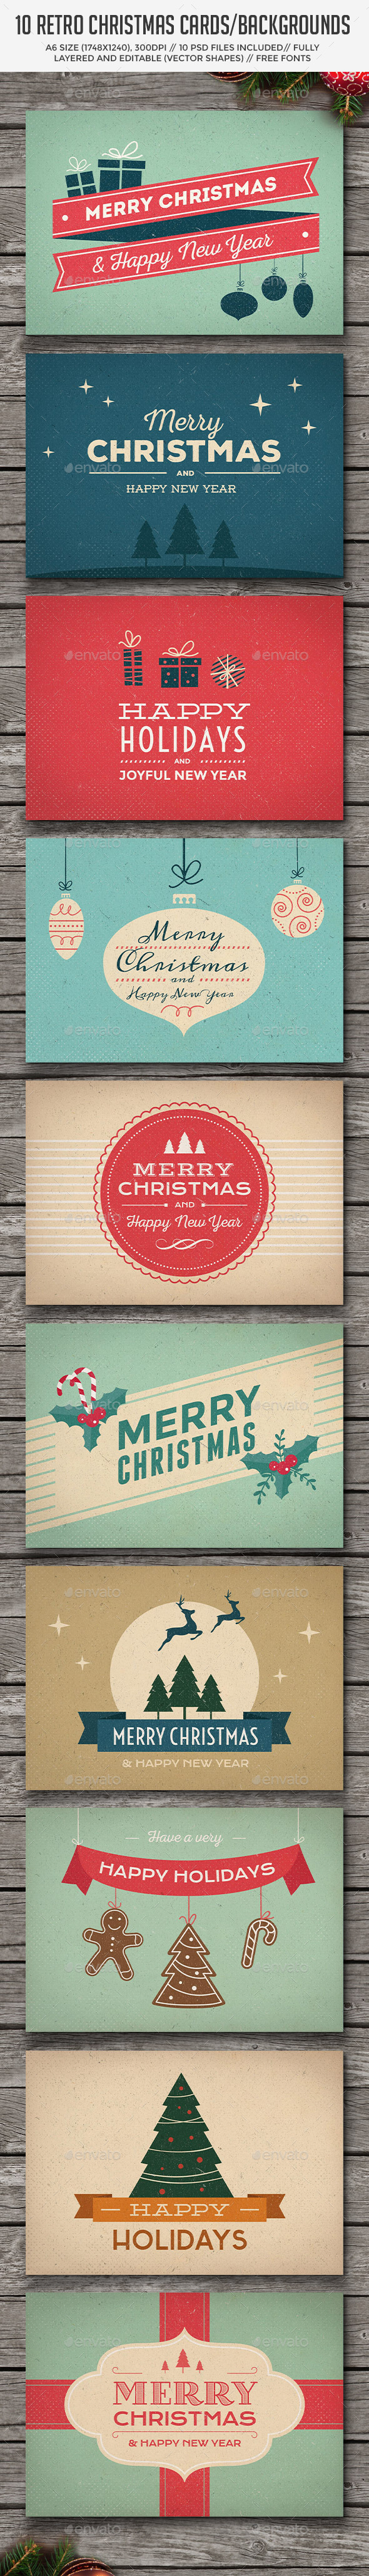 GraphicRiver 10 Retro Christmas Cards Backgrounds 9524568